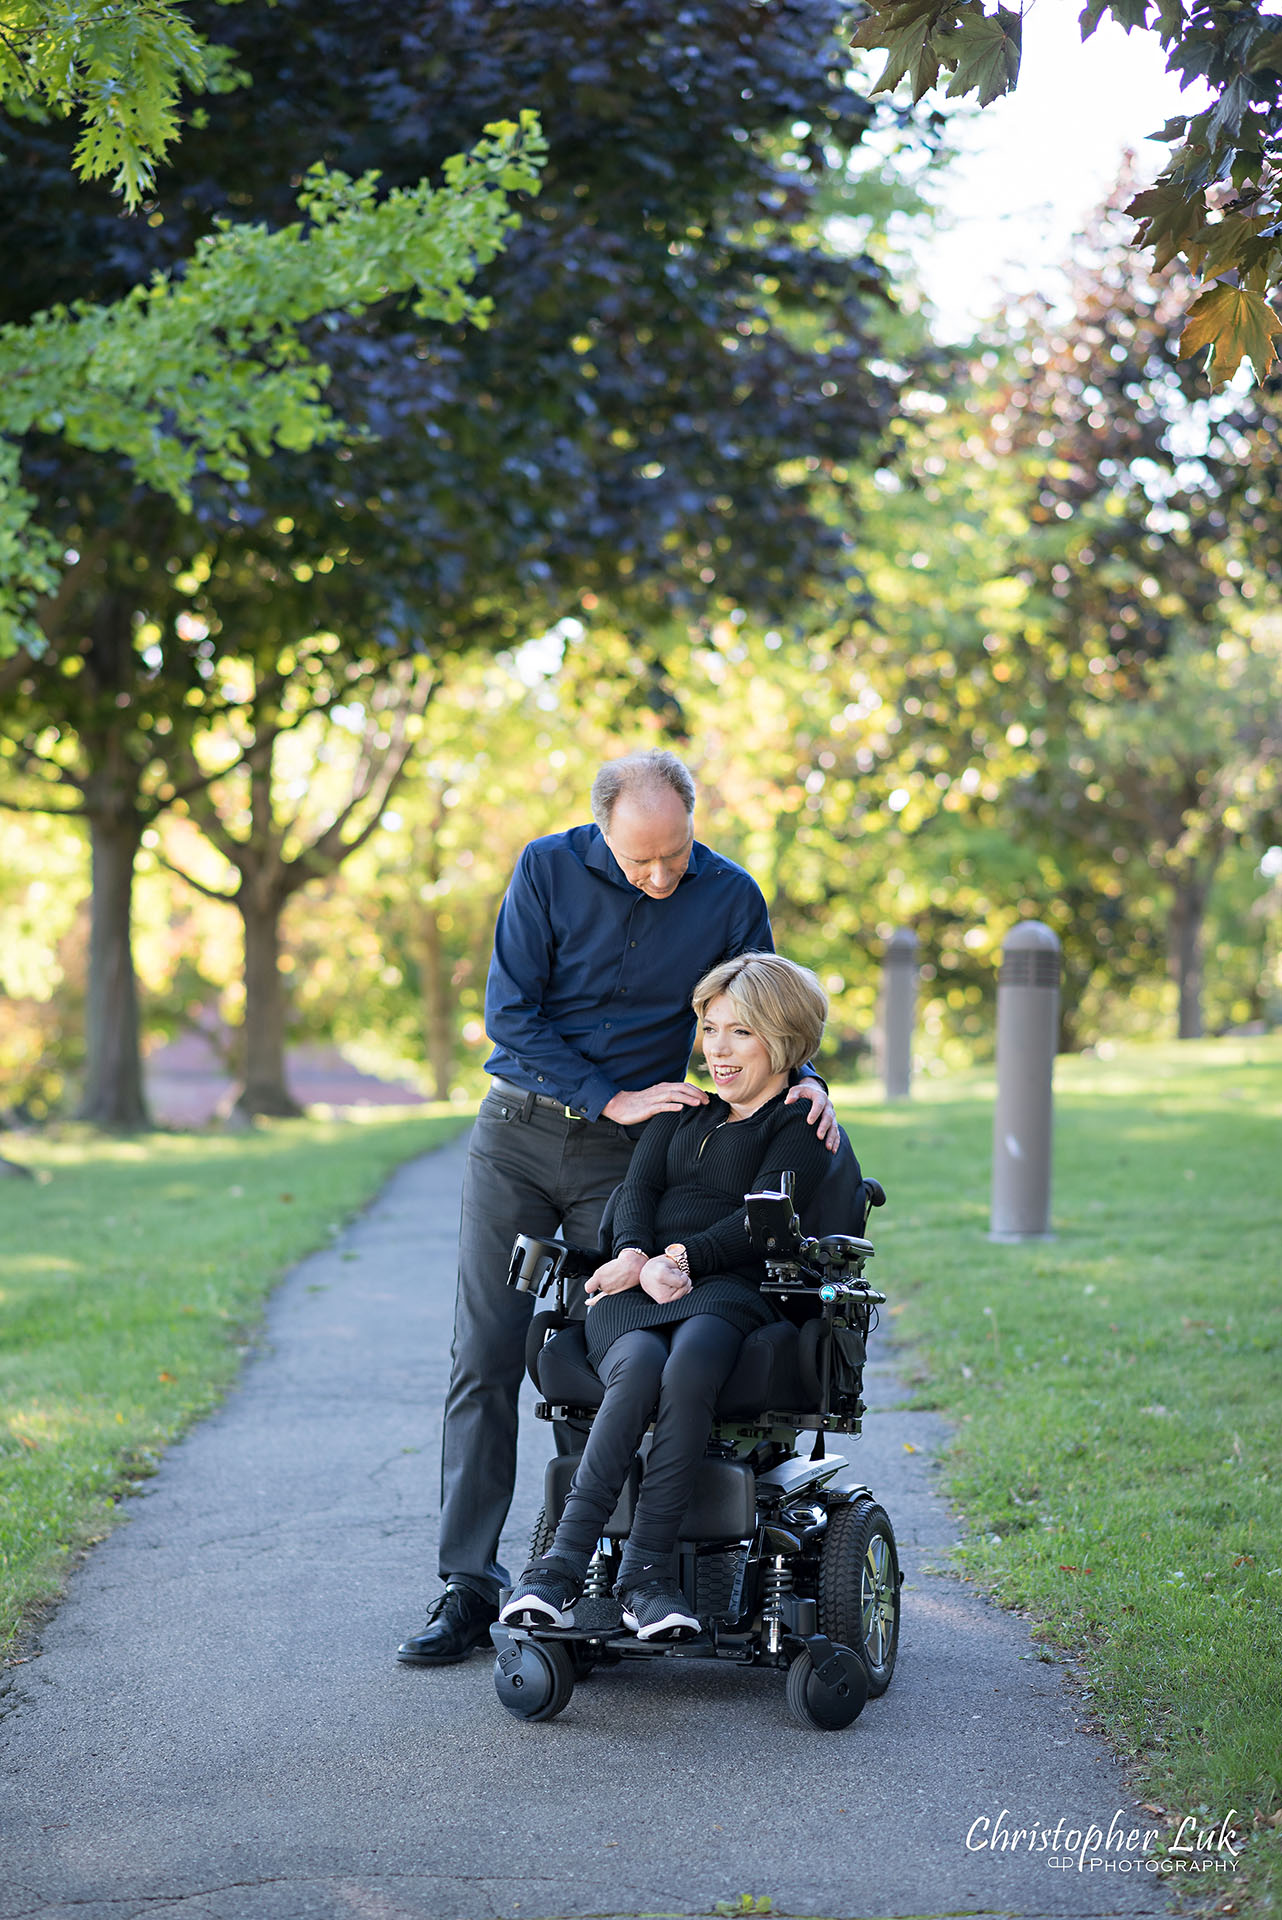 Christopher Luk Toronto Wedding Photographer Whitby Durham Engagement Session Bride Groom Candid Natural Photojournalistic Wheelchair Path Pathway Hug Shoulder